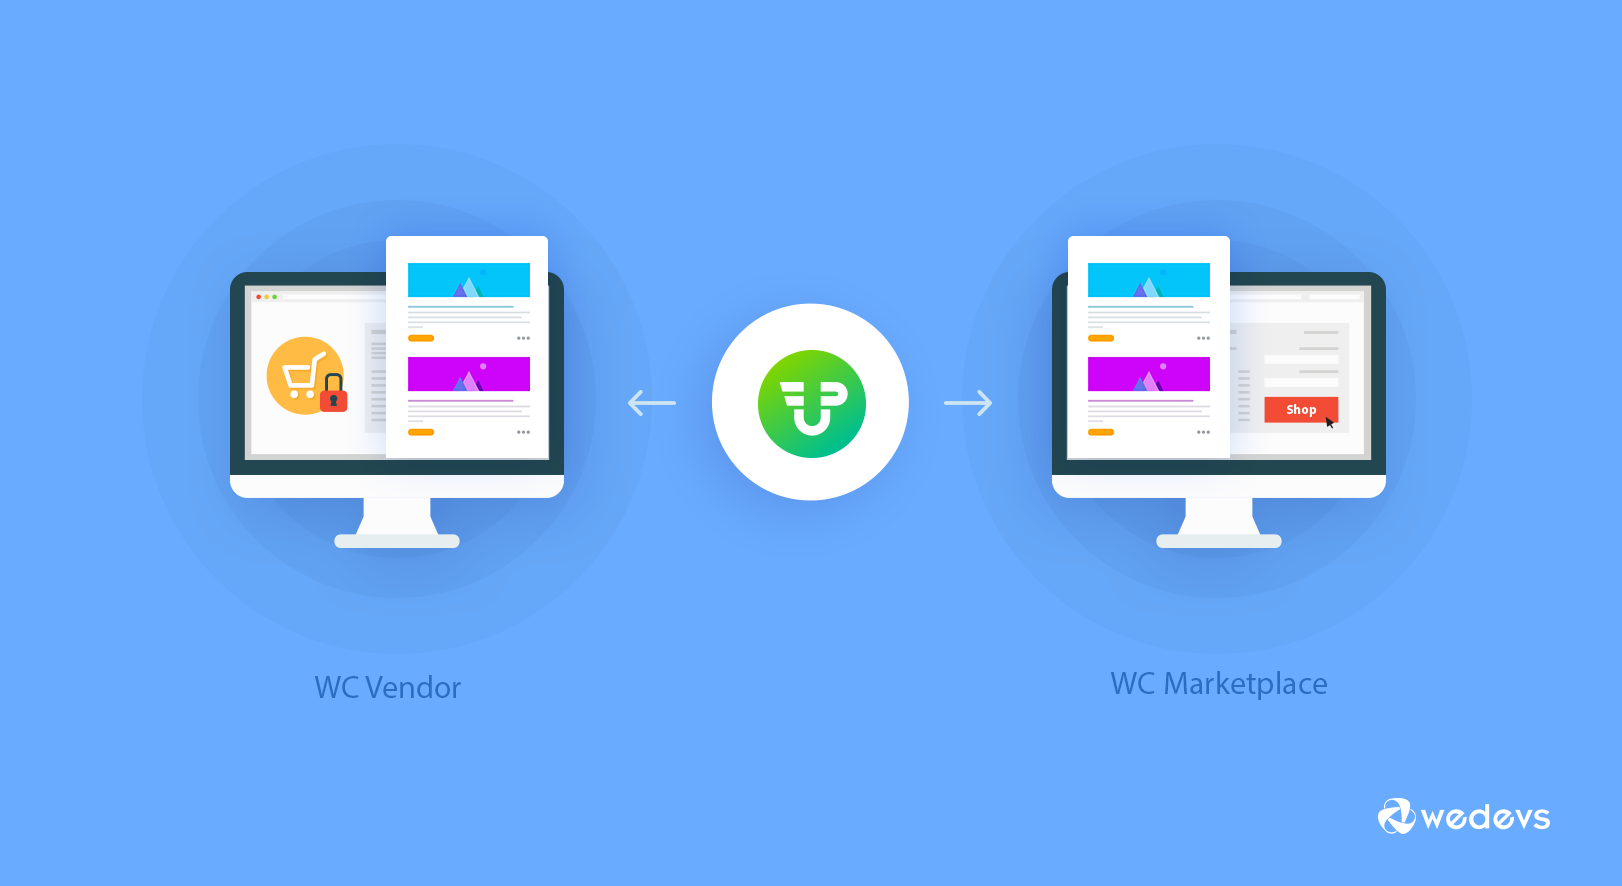 Integrate WC Vendor Marketplace or WC Marketplace with WP User Frontend